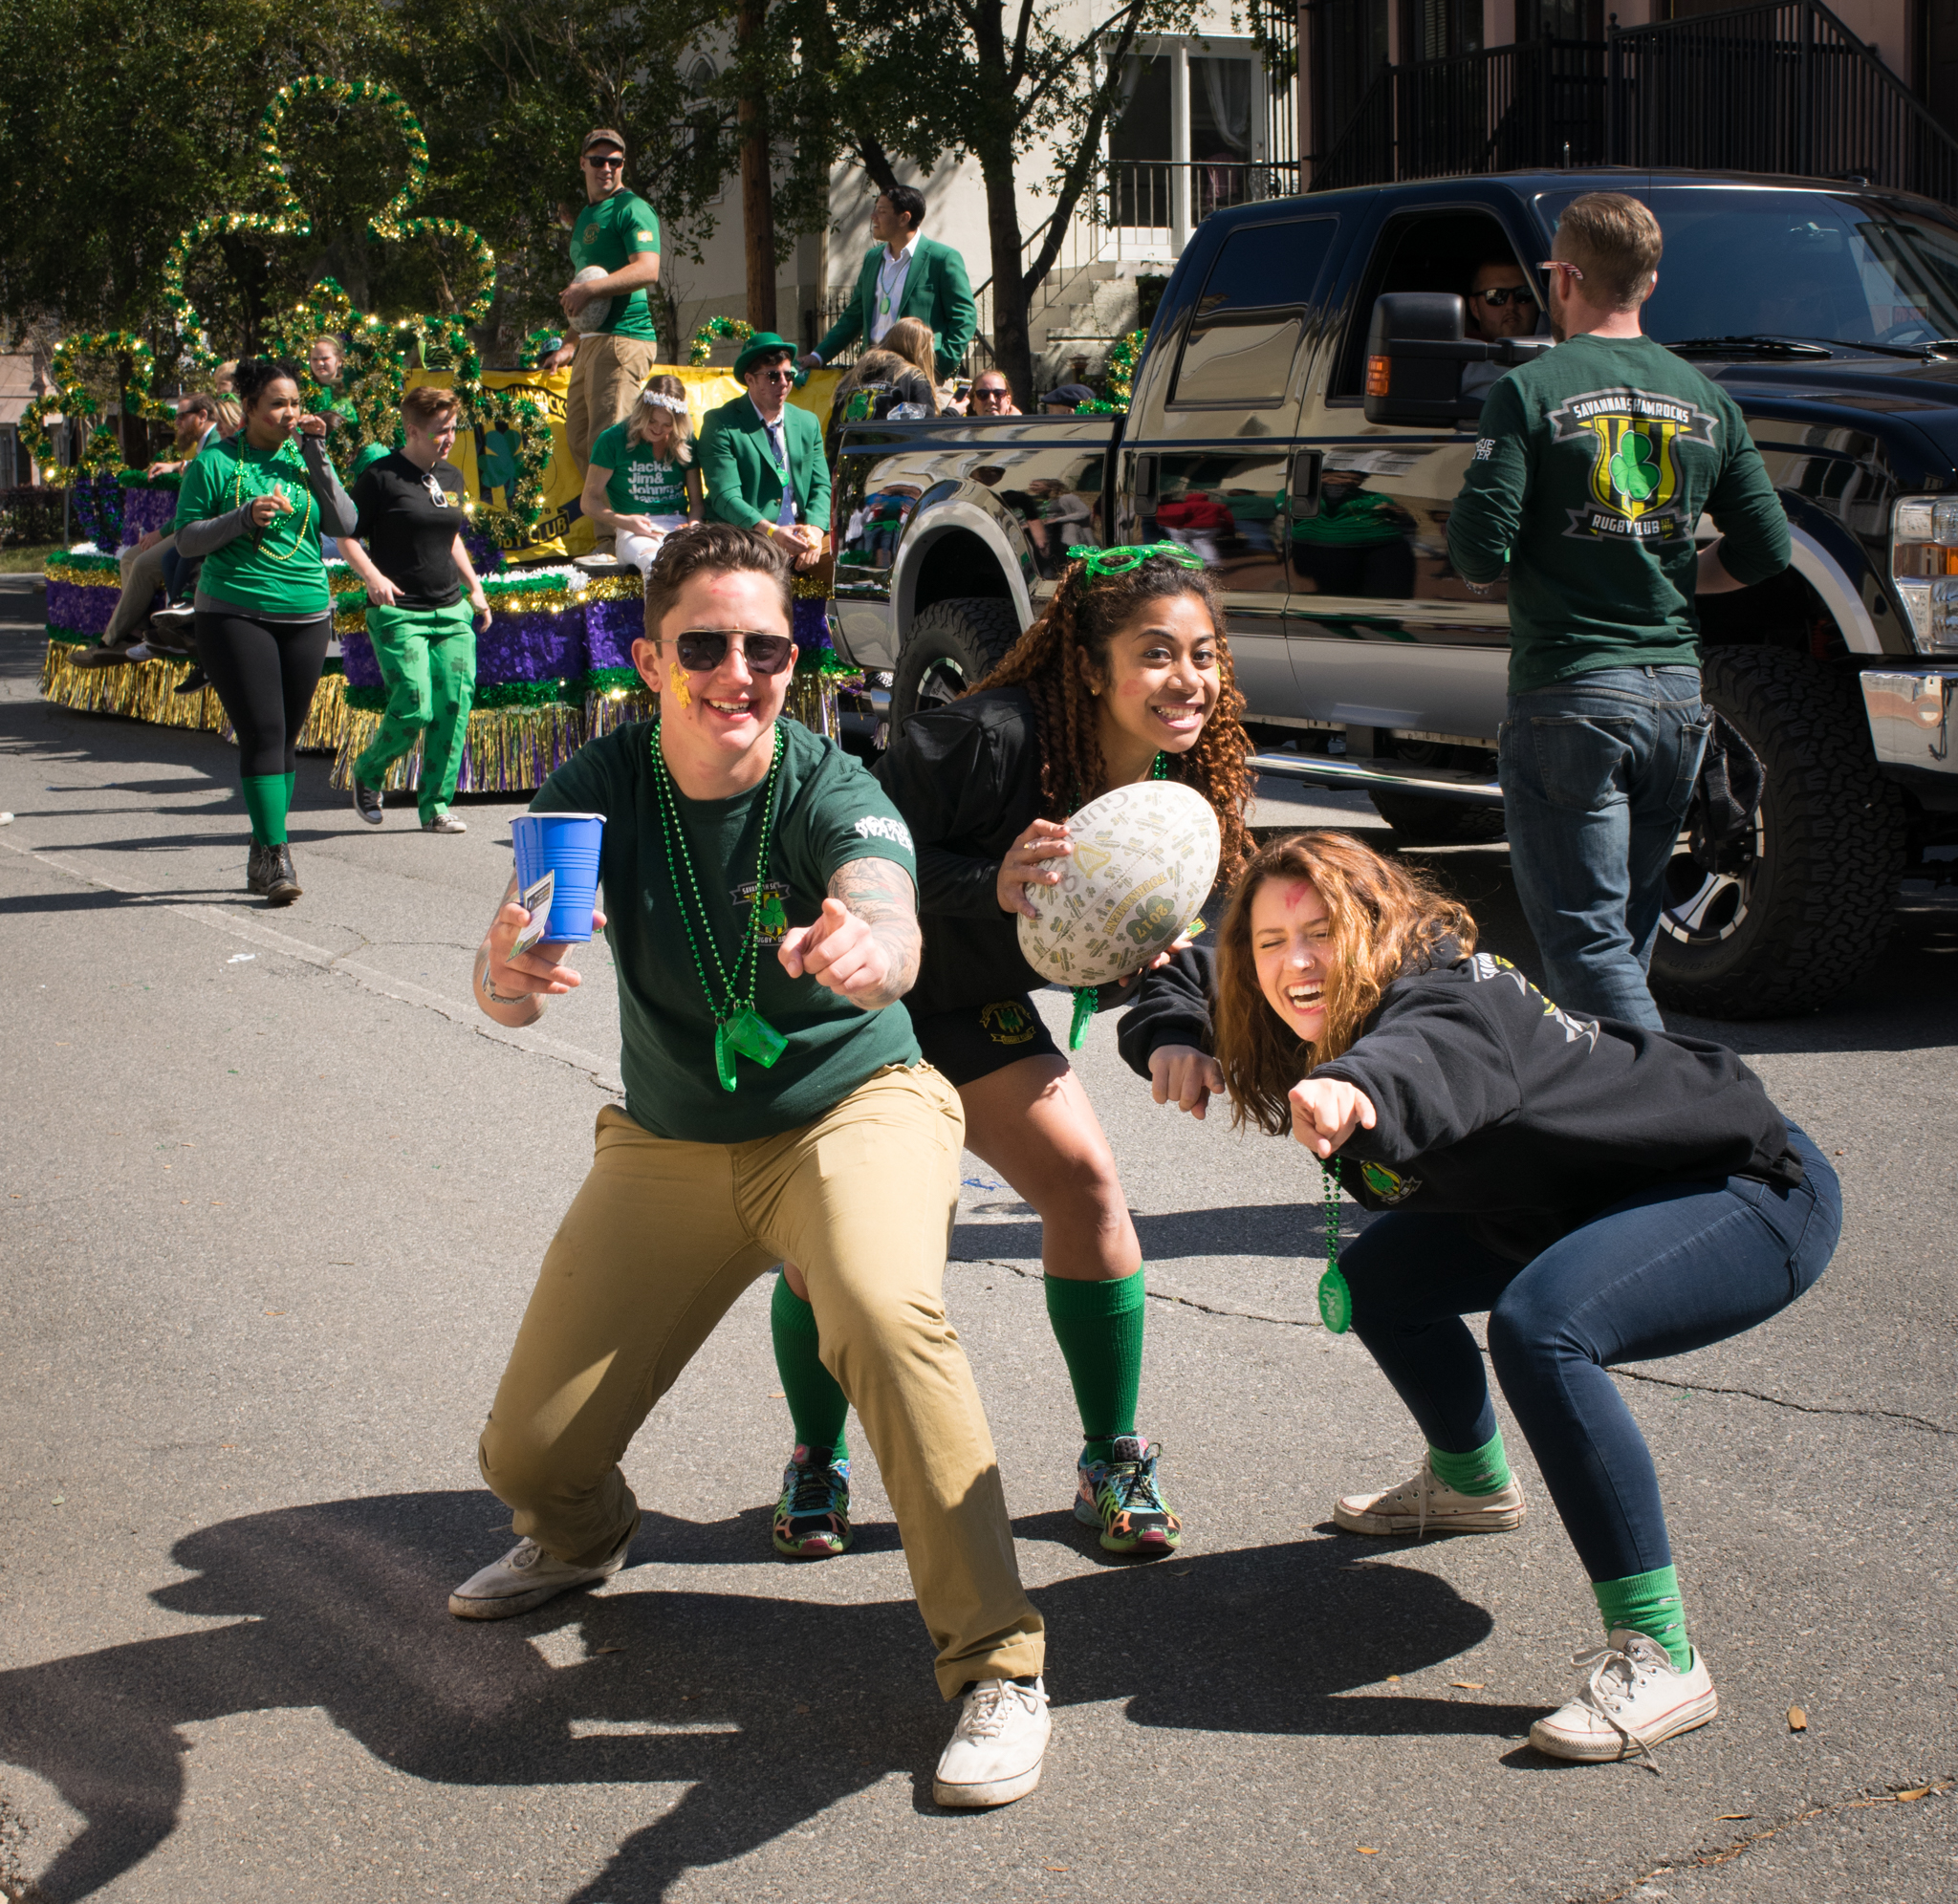 10-St Patricks Day 2017.jpg